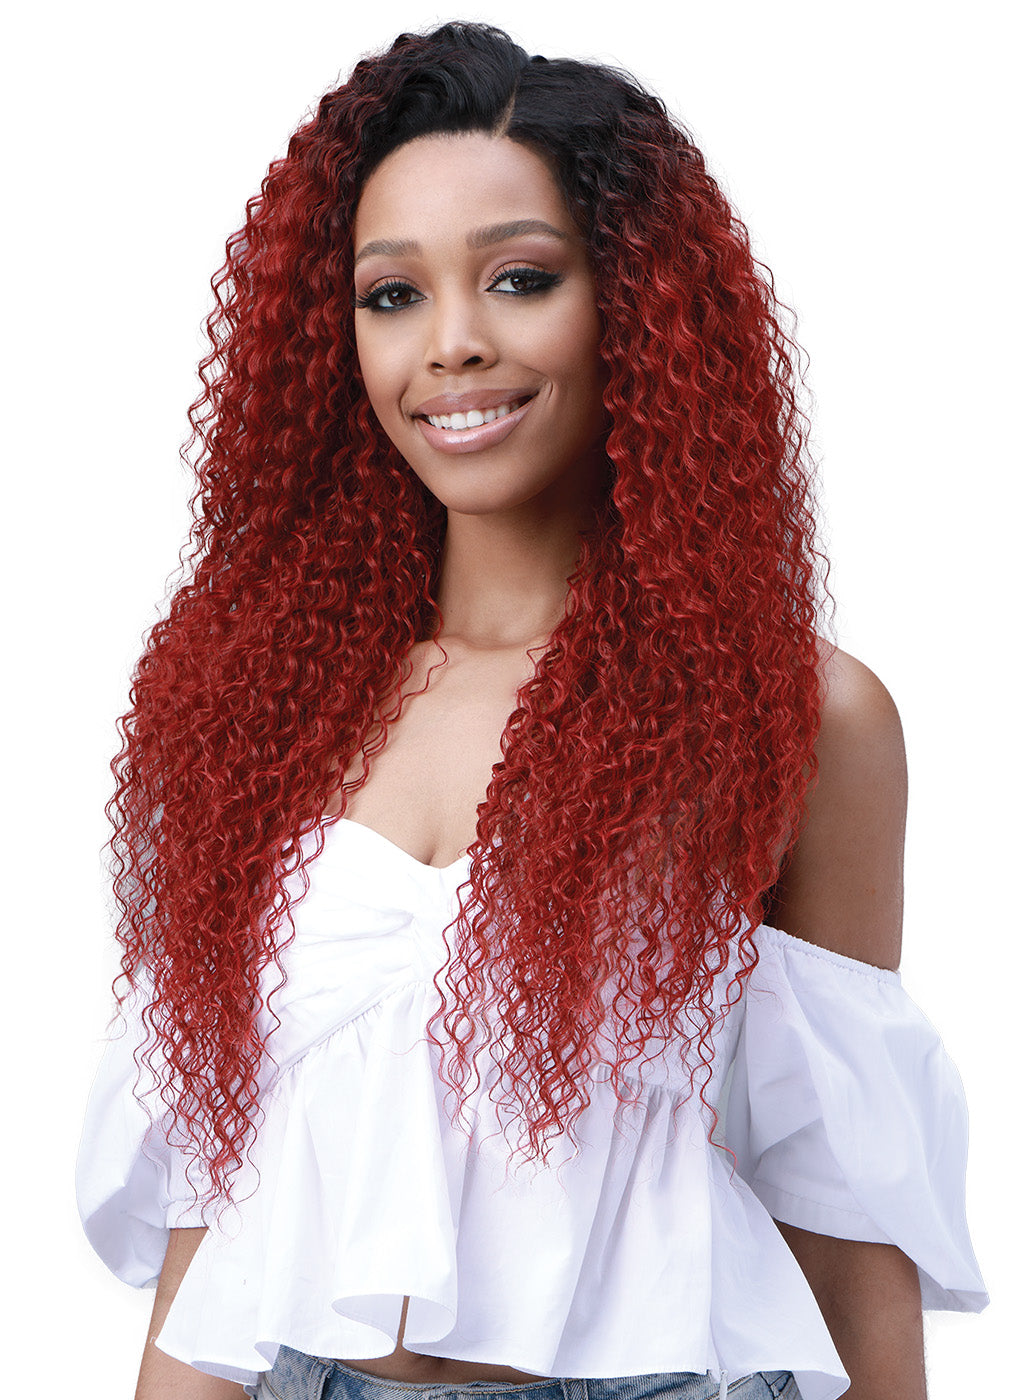 Bobbi Boss Human Hair Blend 13X6 Frontal Lace Wig MOGLWJE26 JERRY CURL 26